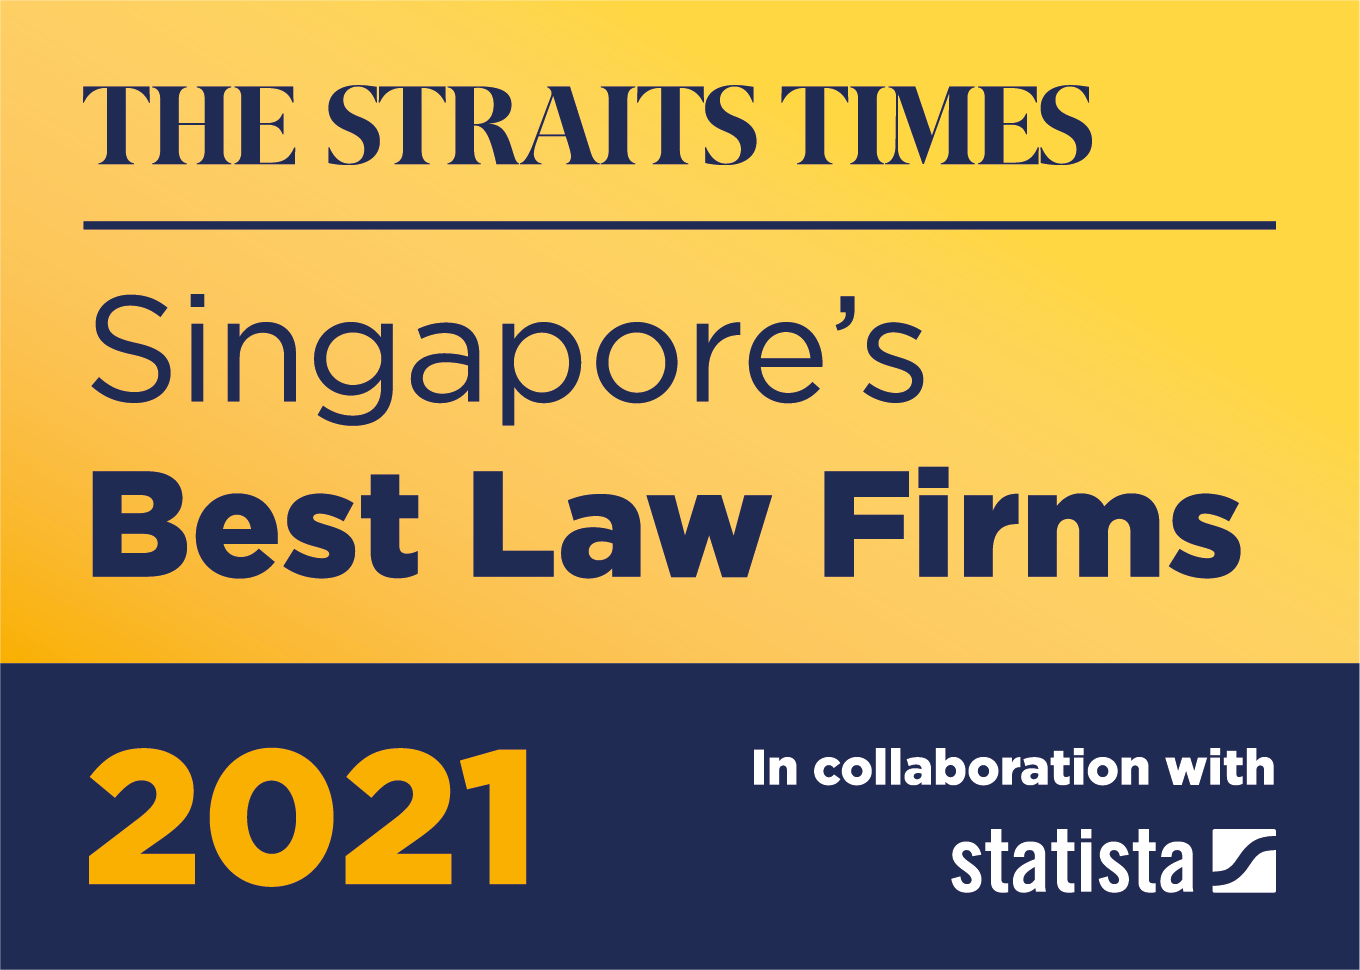 The Straits Times - Singapore's Best Law Firms 2021